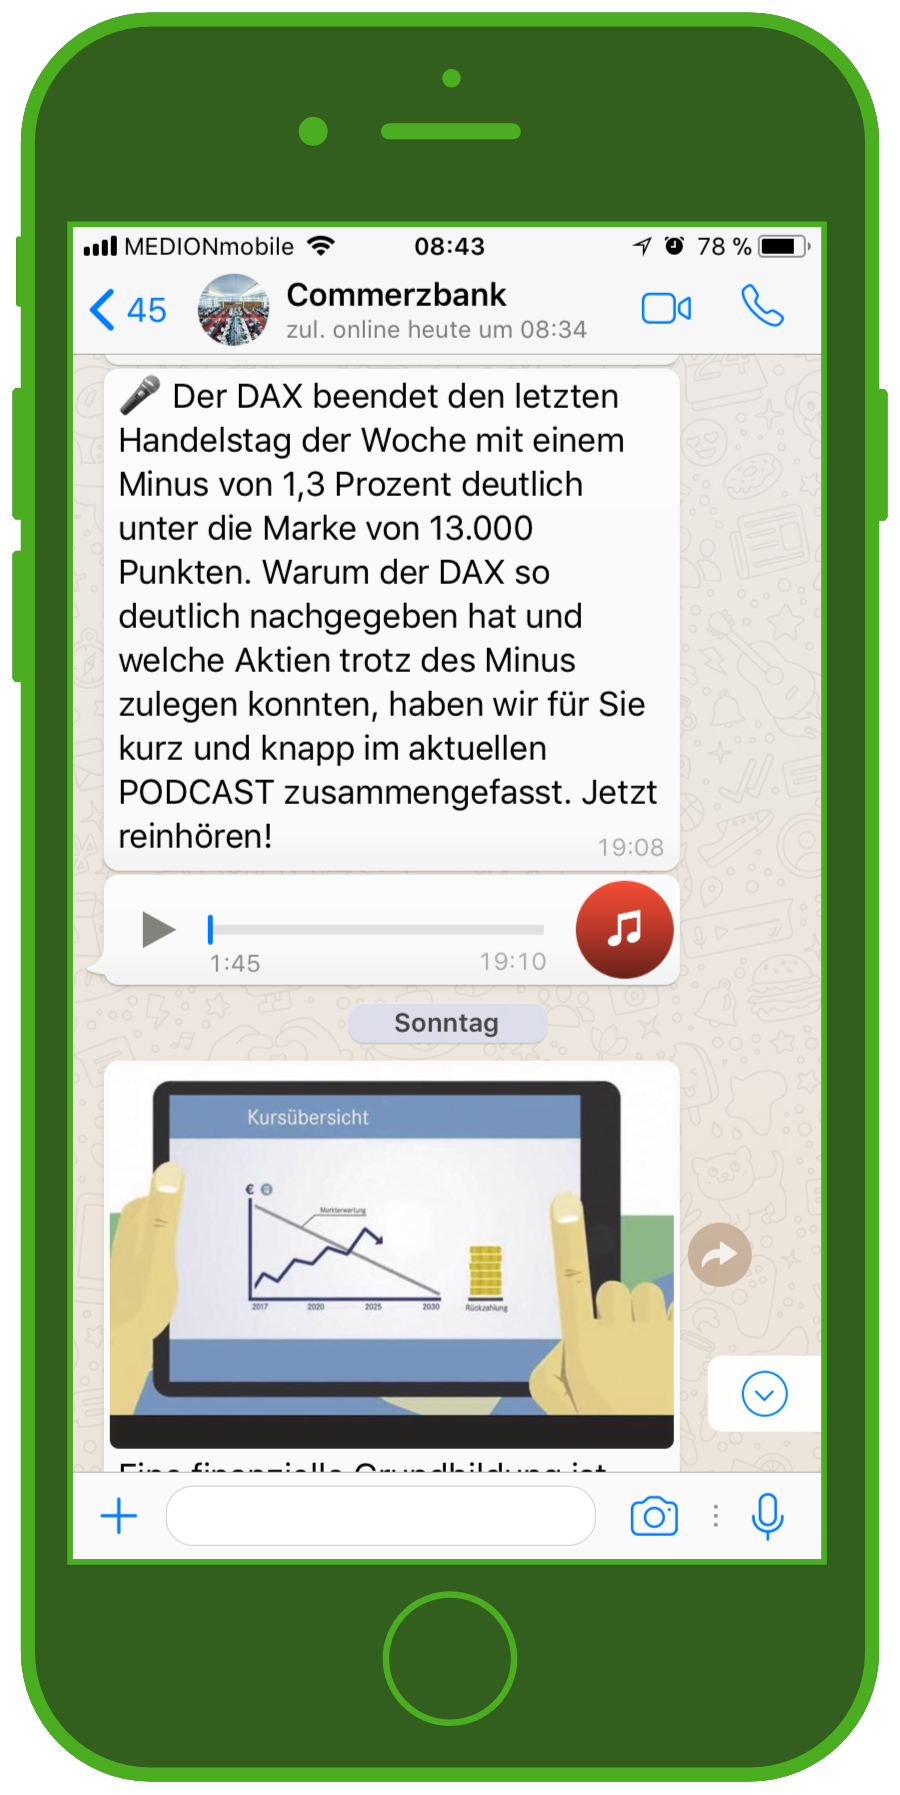 messenger-marketing-device-commerzbank